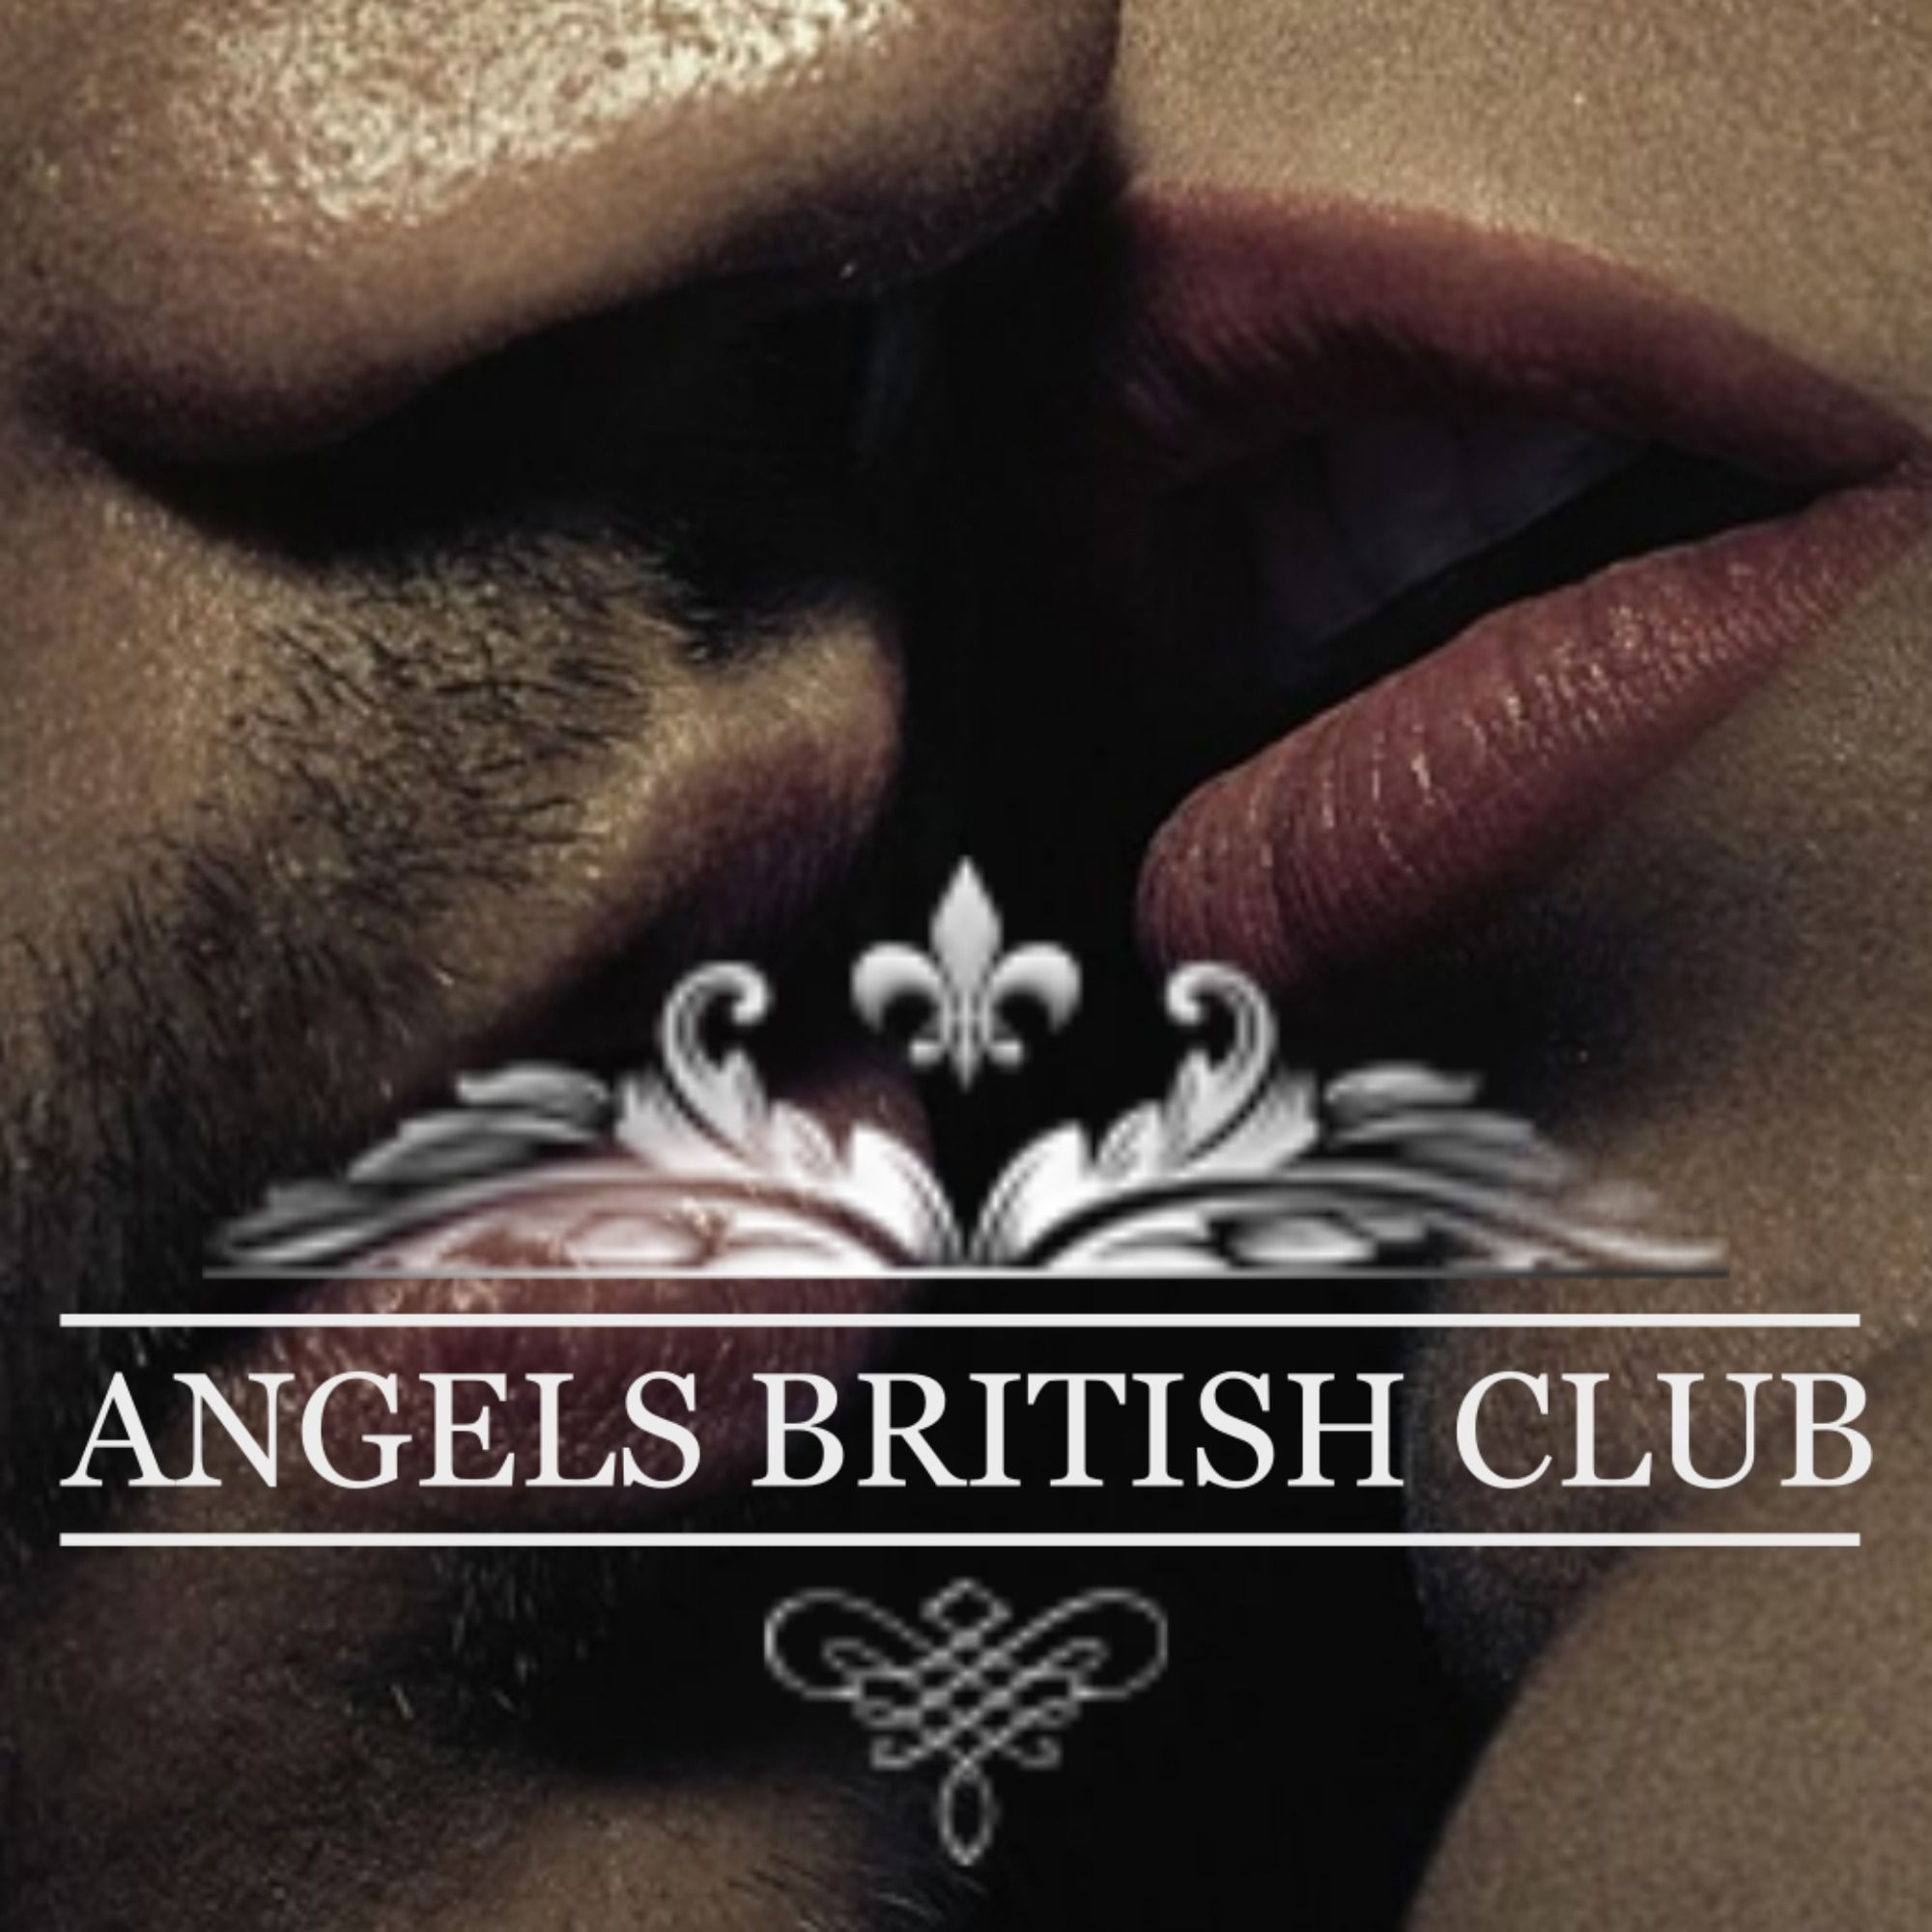 London escort agency, Angles British Club